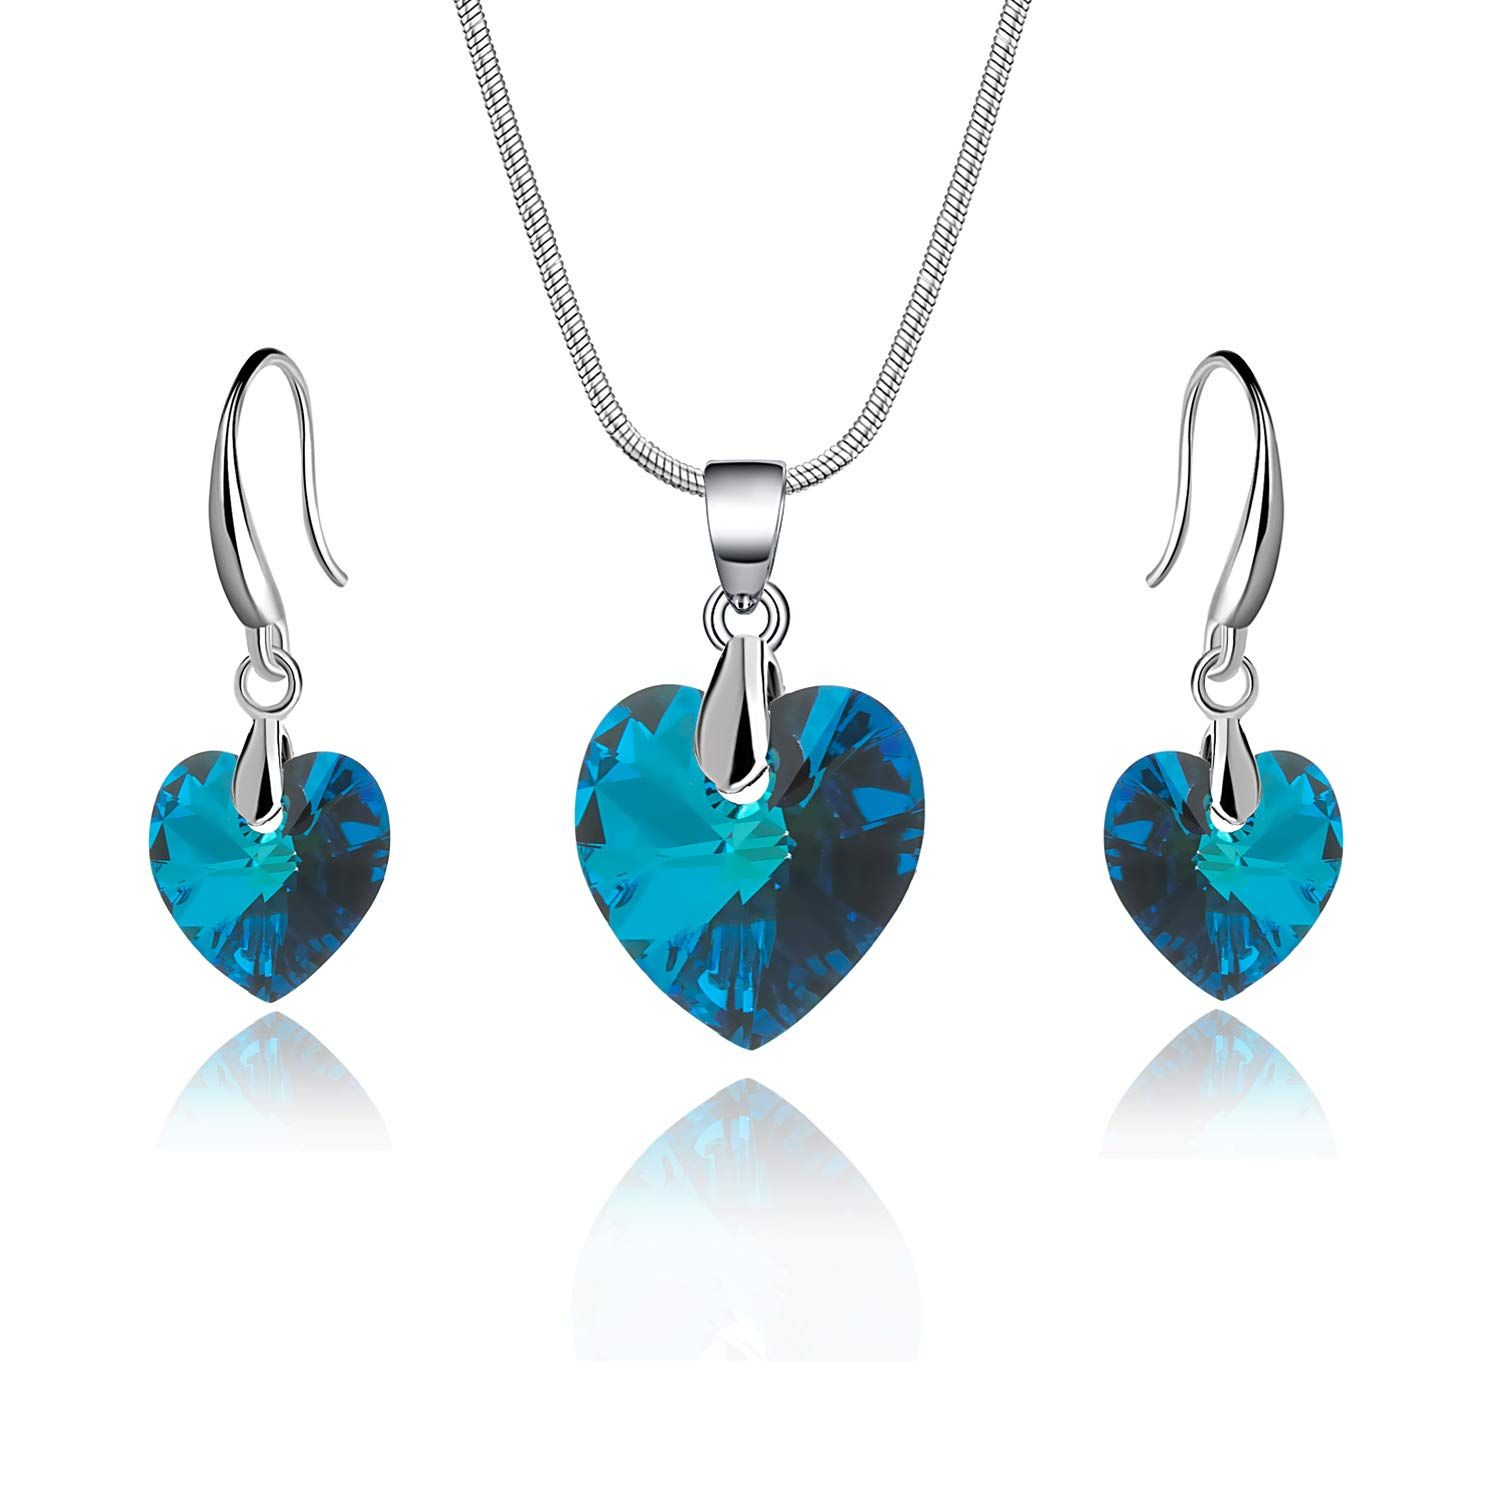 Evevic Swarovski Crystal Heart Necklace Earrings Set For